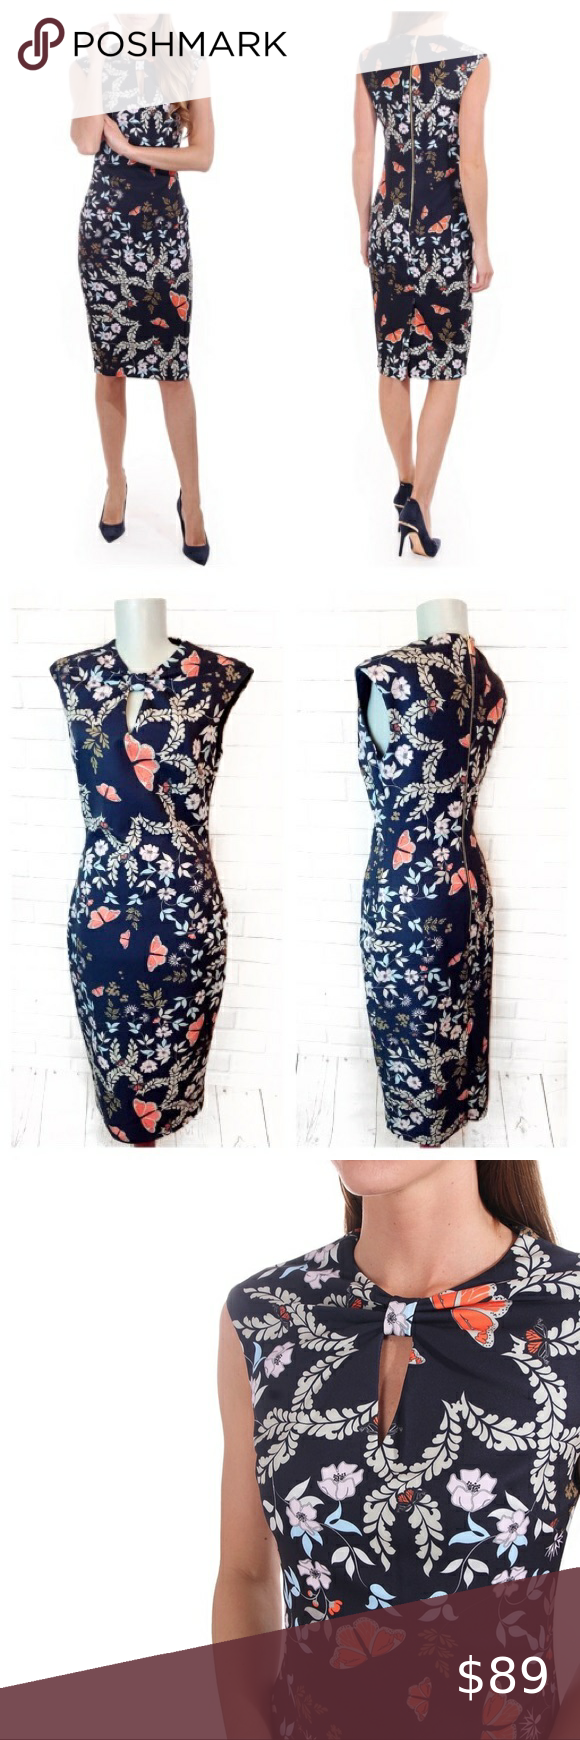 Ted Baker • Kairra Kyoto Gardens Bow Neck Dress Ted Baker • Kairra Kyoto Gardens Bow Neck Dress is gentle worn. Measurements are:  Length: 43.5 inches  Bust: 16.5 inches  Waist: 14.5 inches  Hip: 18.5 inches Comes from pet and smoke free home.   1 Day Shipping ~ Bundle Items To Save.  Follow along @fashion___warrior on IG! Ted Baker London Dresses Midi